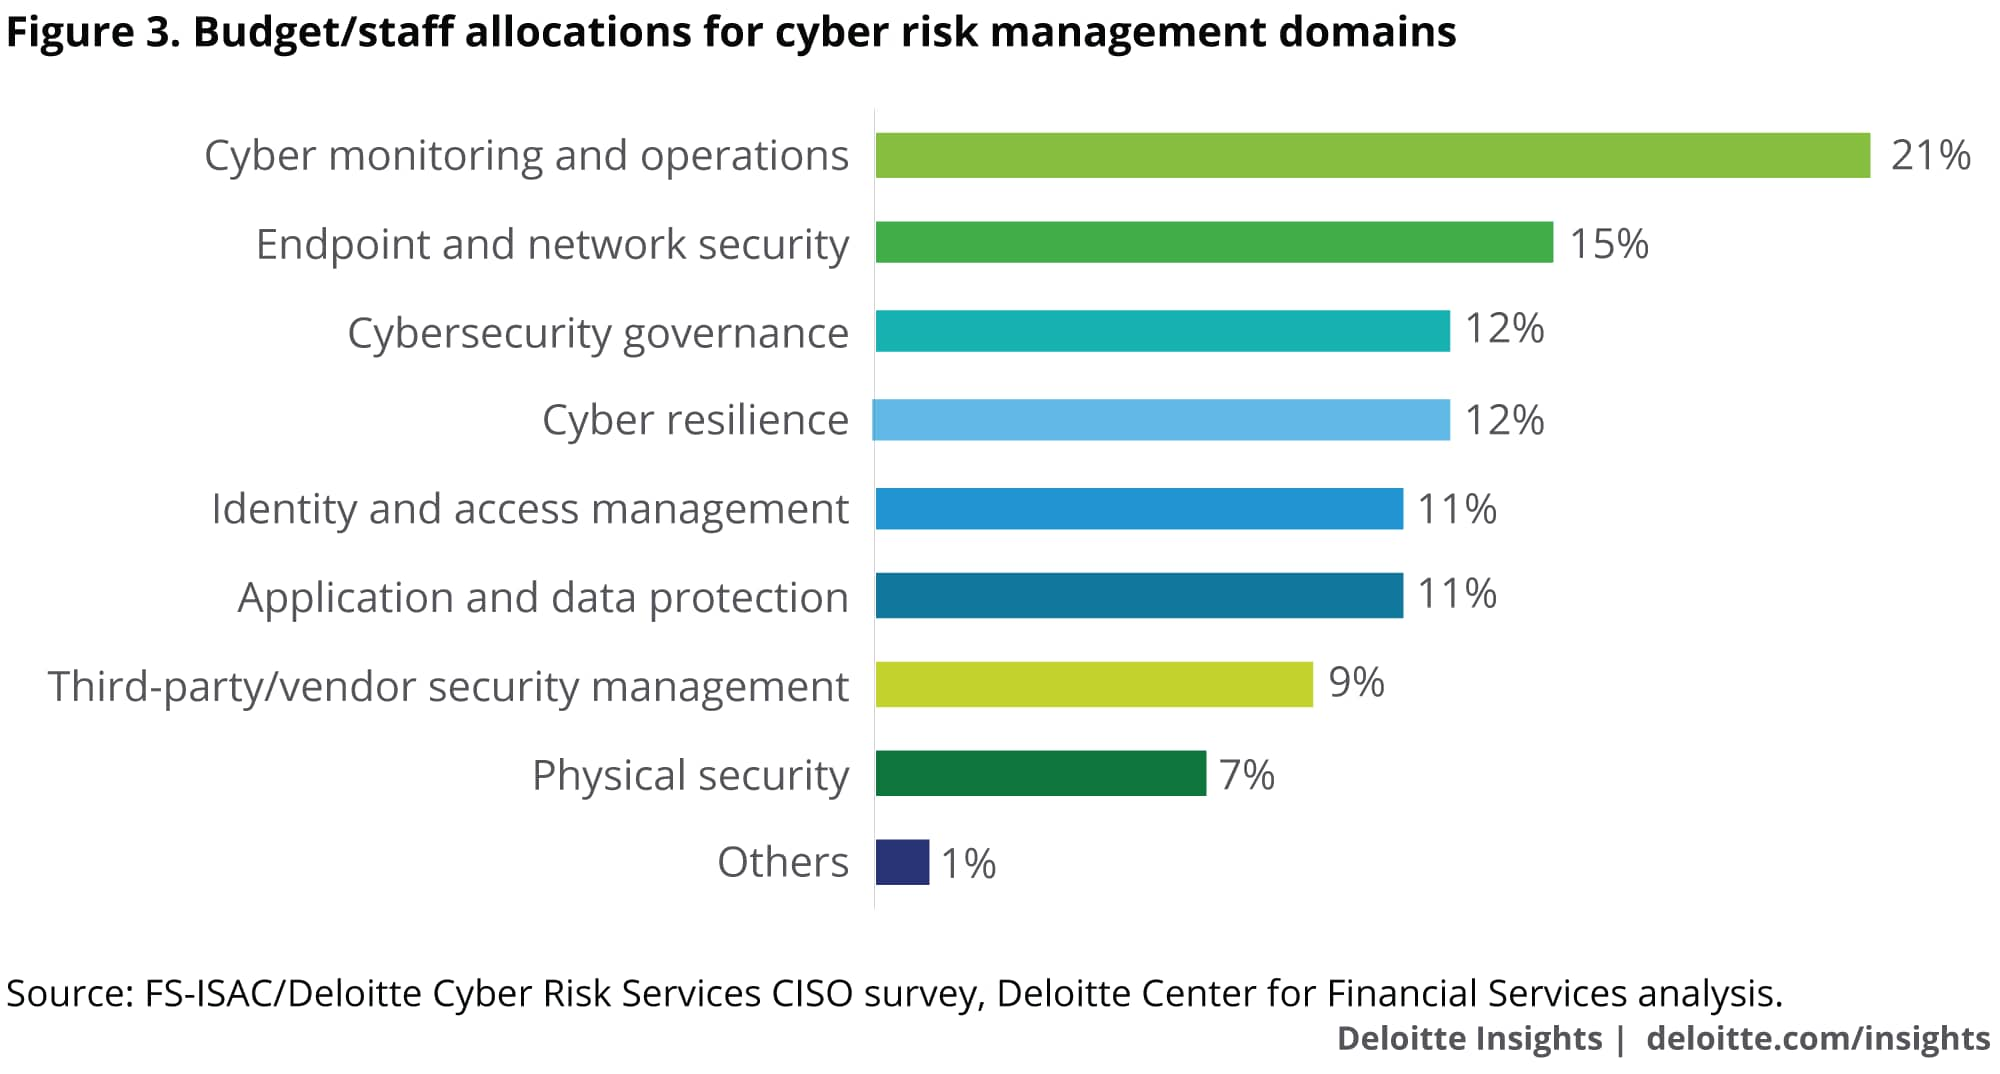 Budget/staff allocations for cyber risk management domains